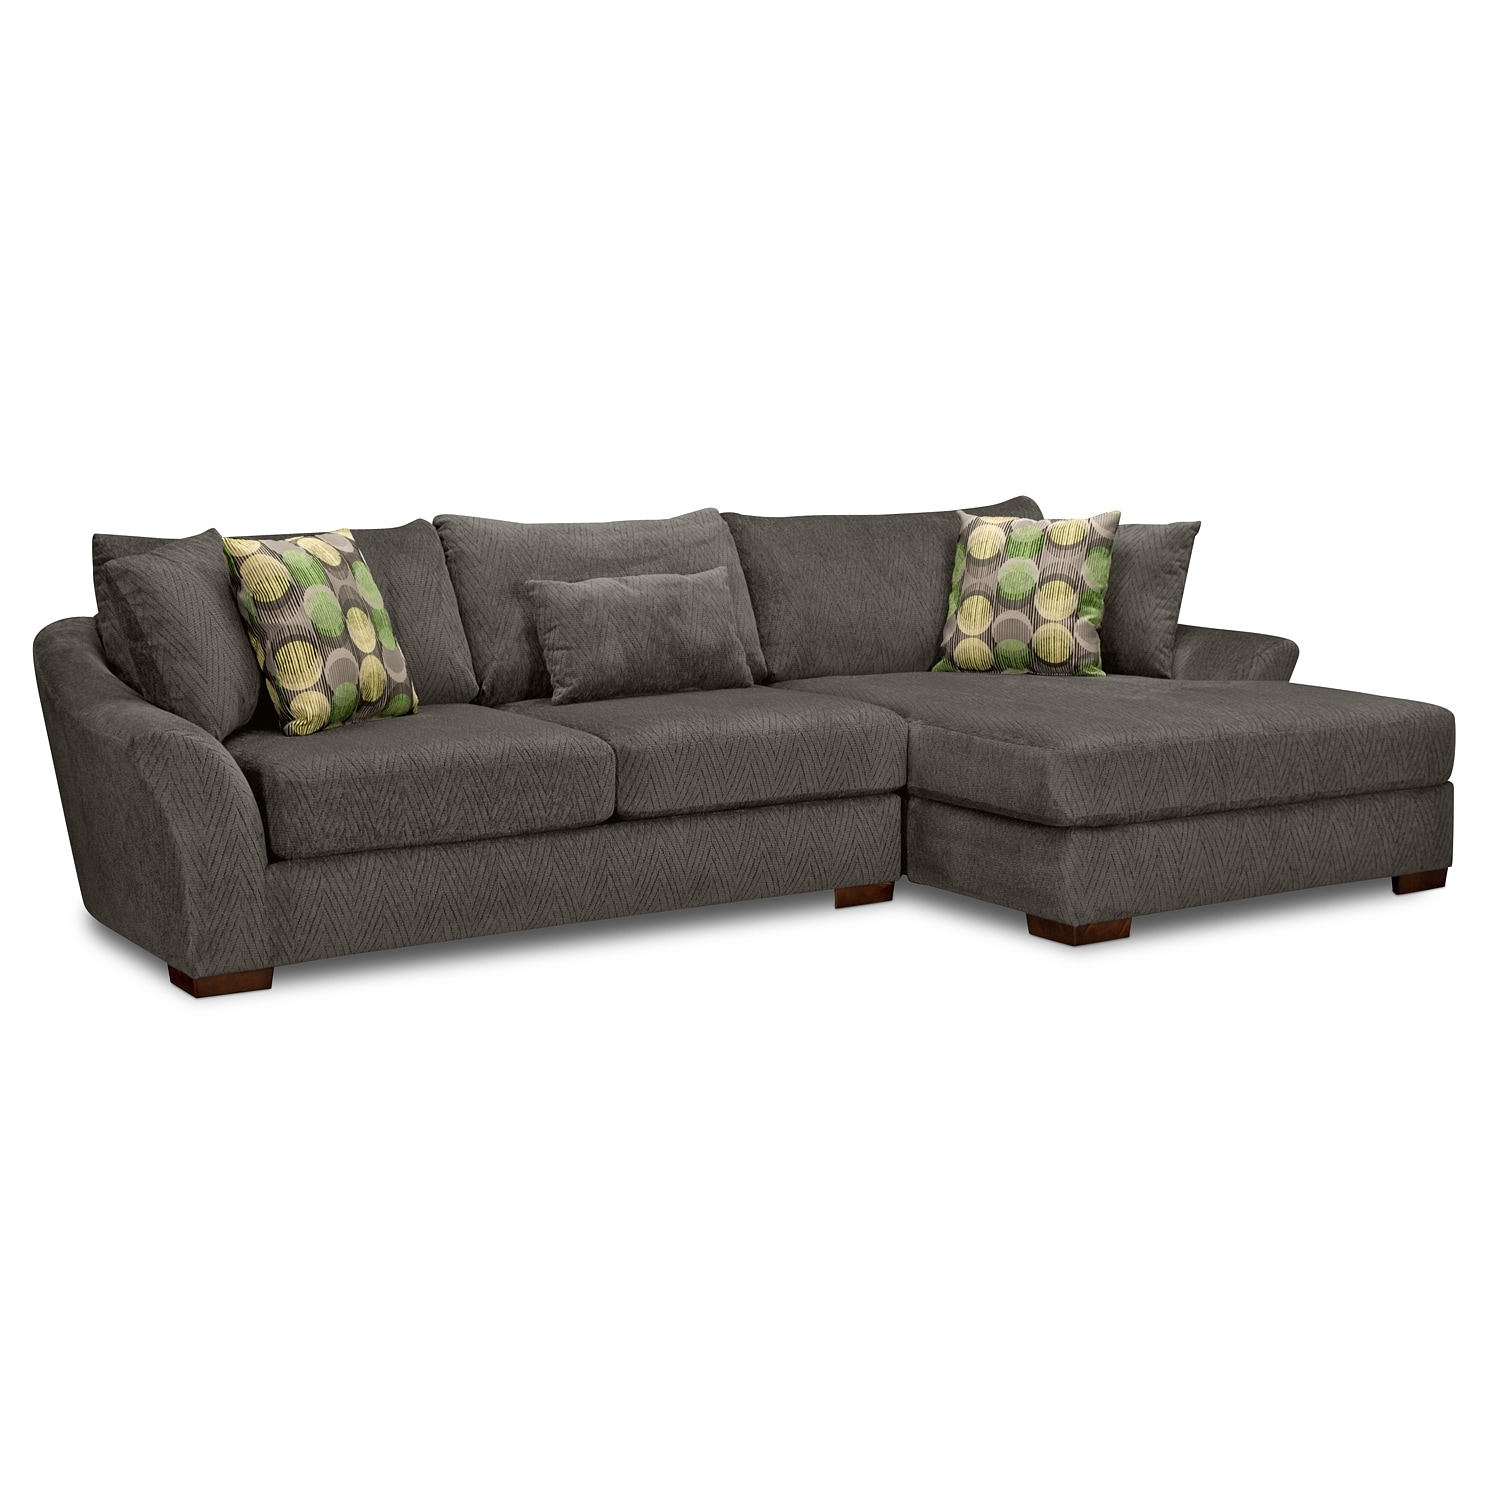 Living Room Furniture - Orleans Gray 2 Pc. Sectional (Reverse)